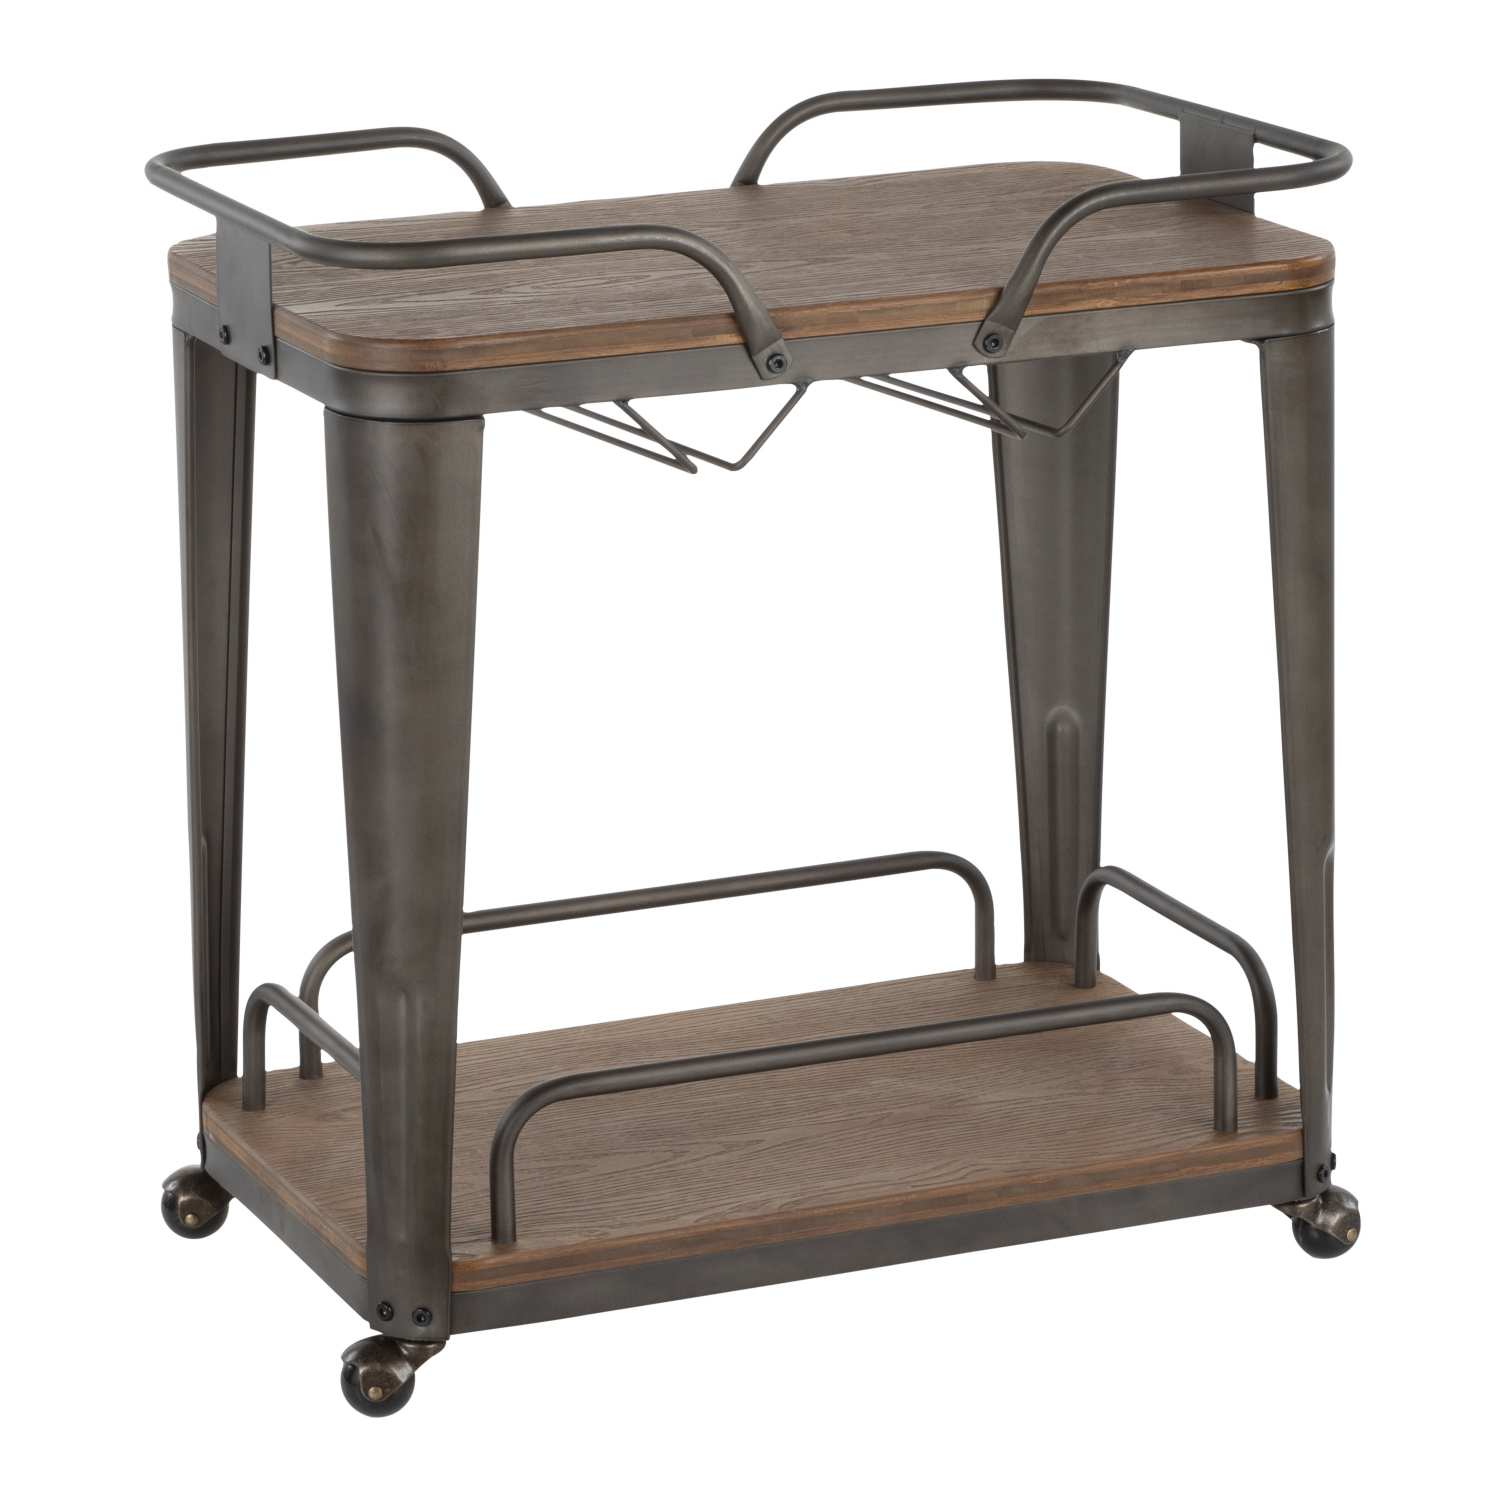 BTC-OR AN+E Oregon Industrial Bar Cart in Antique Metal and Espresso Wood-Pressed Grain Bamboo by LumiSource for Bar Area, Dining Room, Kitchen, Living Room, Break Room, Office